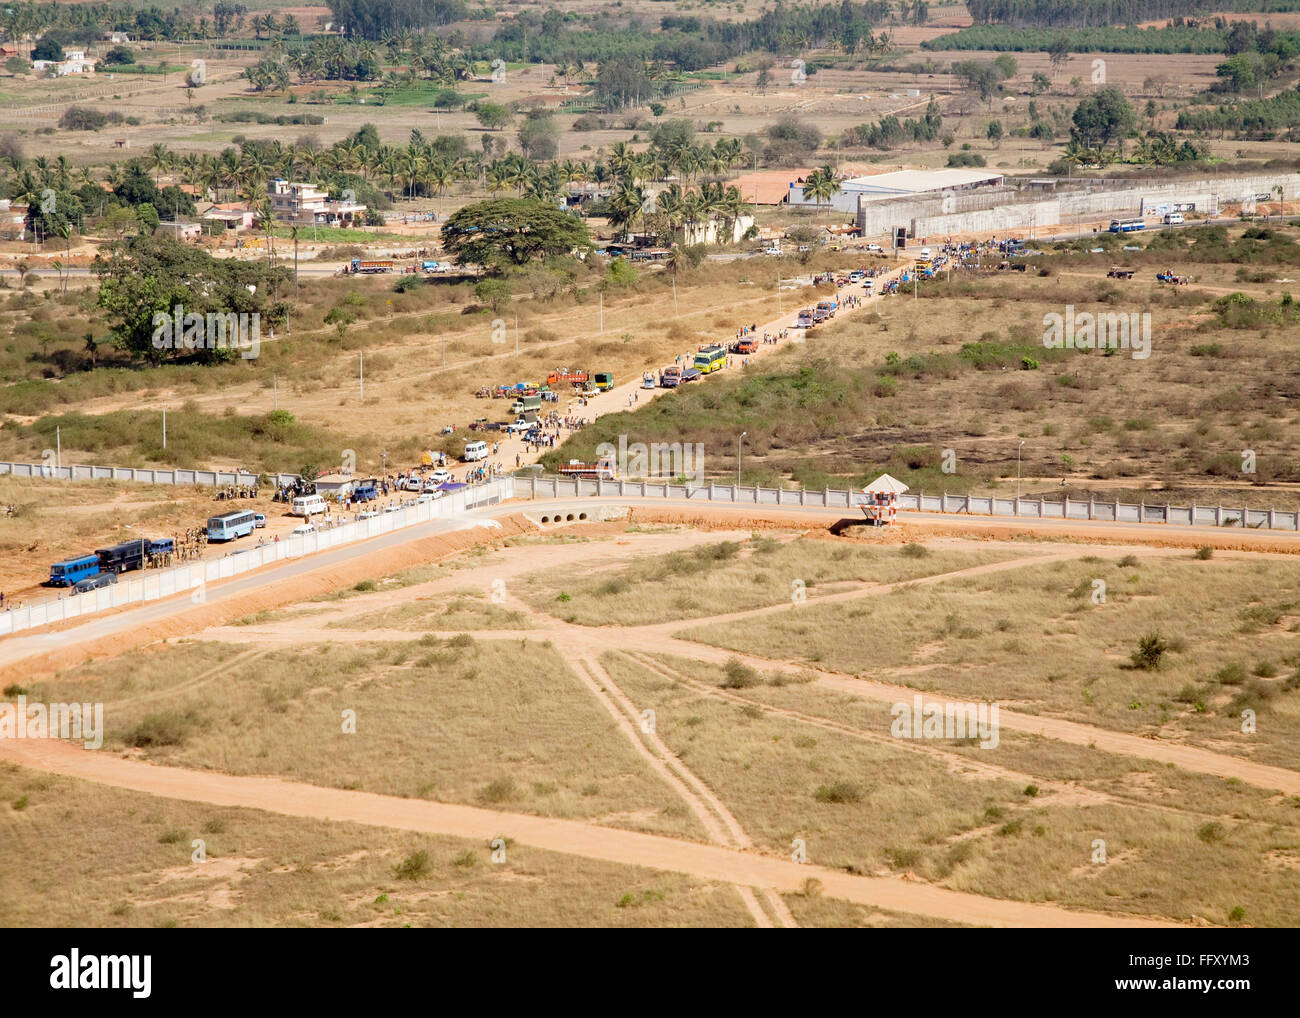 Graphical look of land from kingfisher airbus Stock Photo